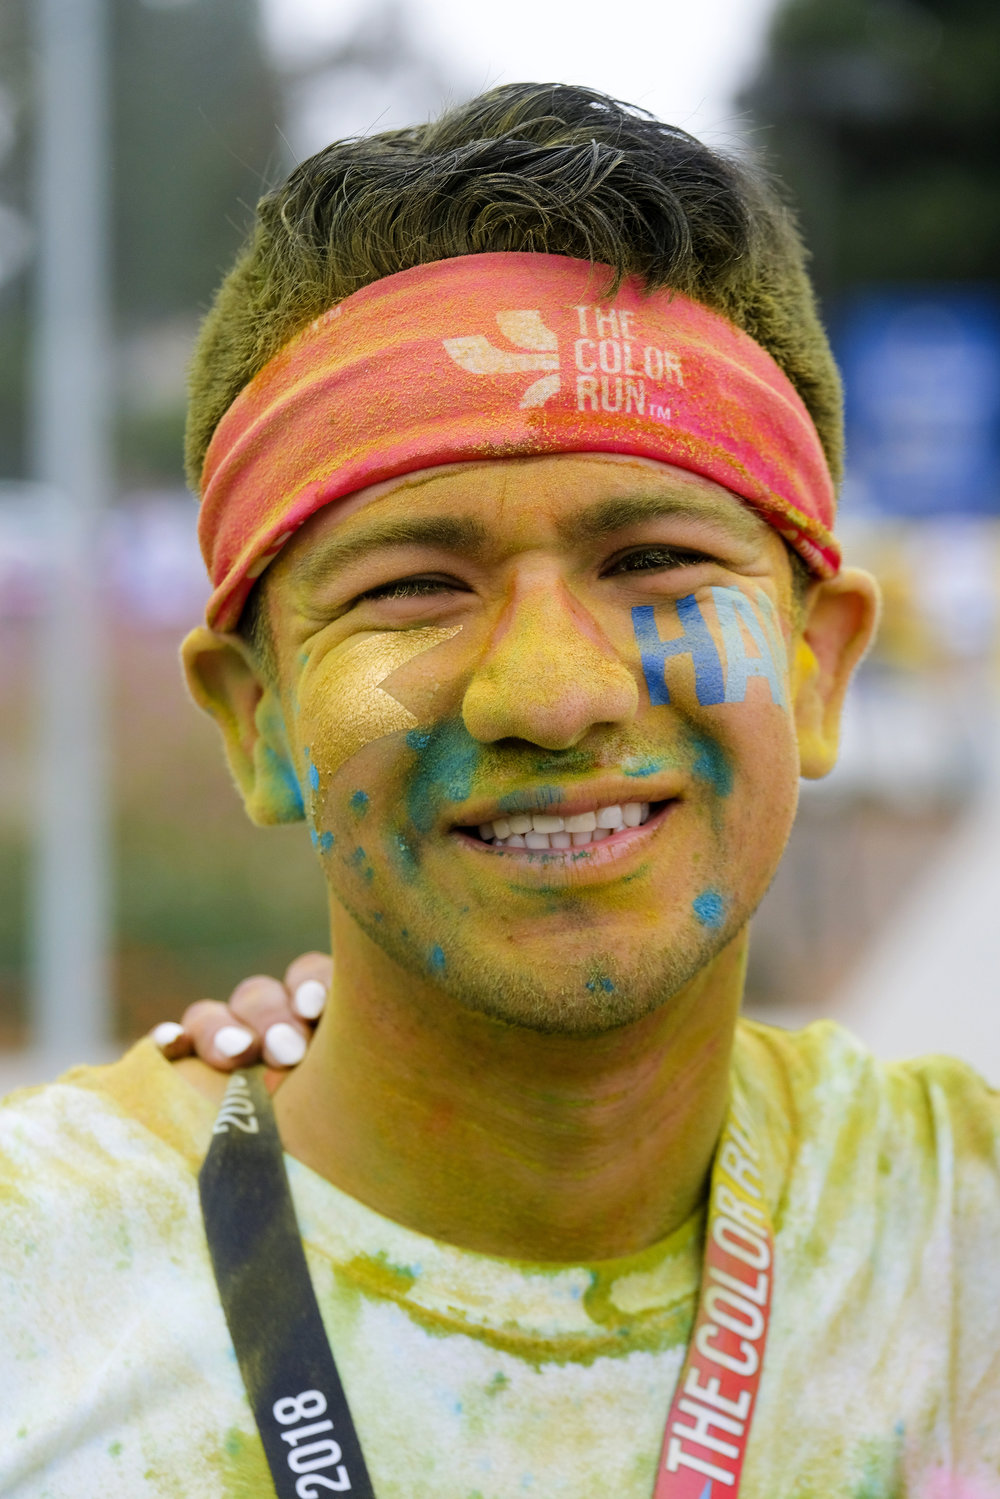 A runner covering with color powder on her face in the Color Run at the StubHub Center in Los Angeles, United States, June 23, 2018.